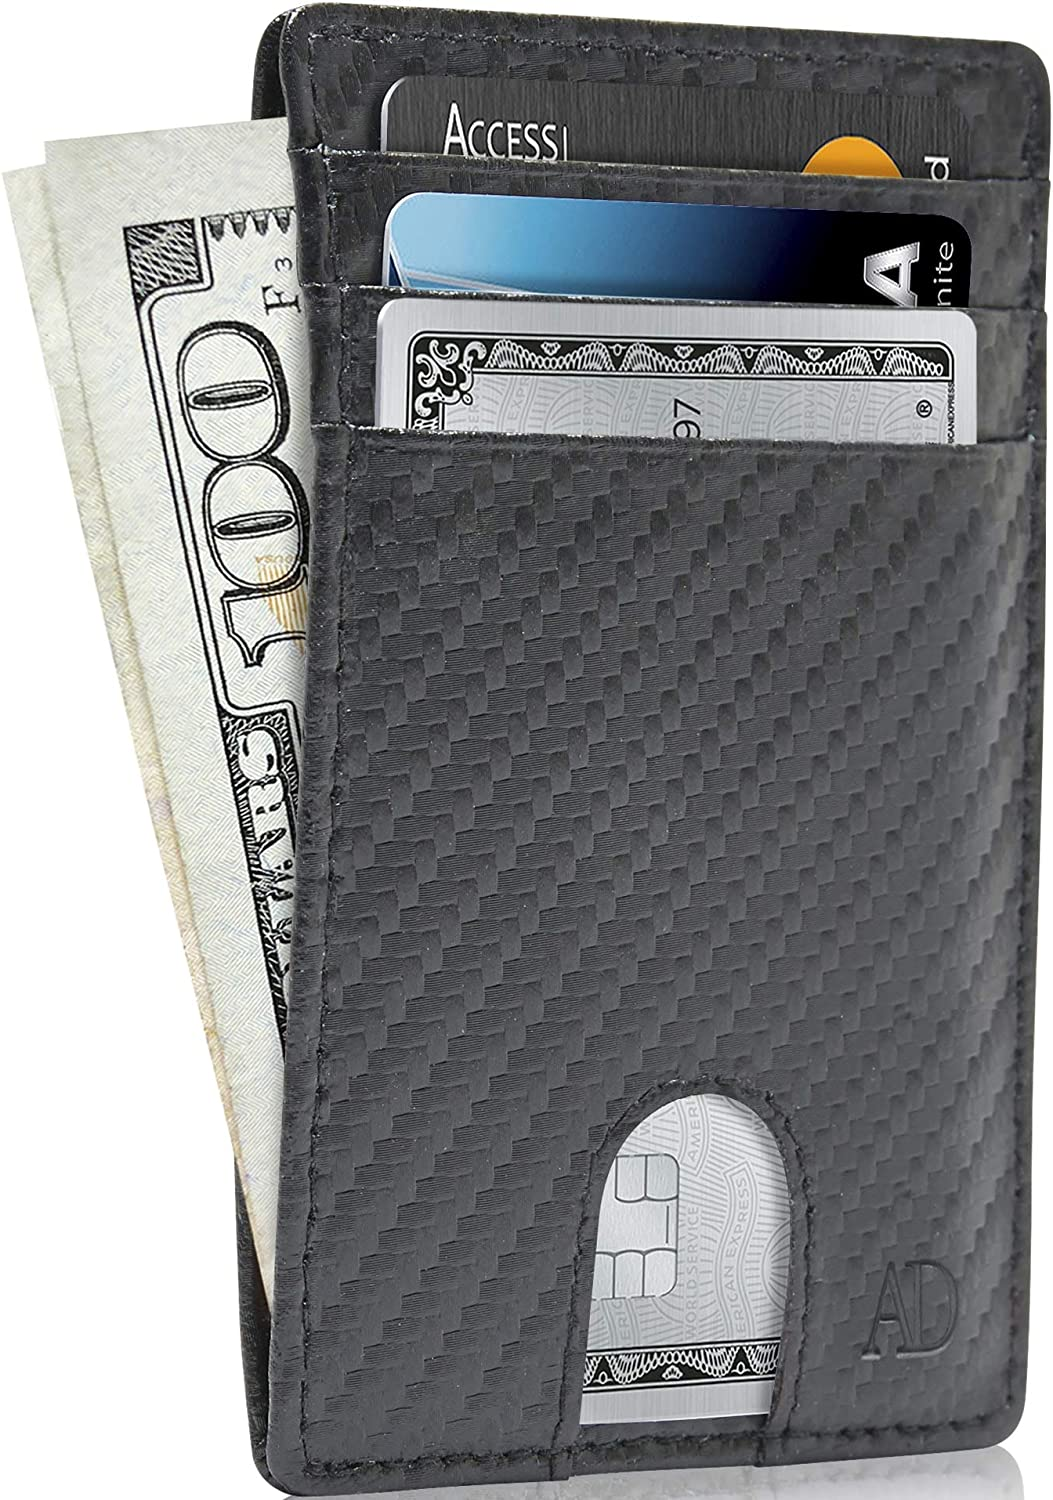 REAL LEATHER Slim Minimalist Mens Wallet - Thin Front Pocket RFID Credit Card Holder Wallets For Men Holiday Gifts For Him